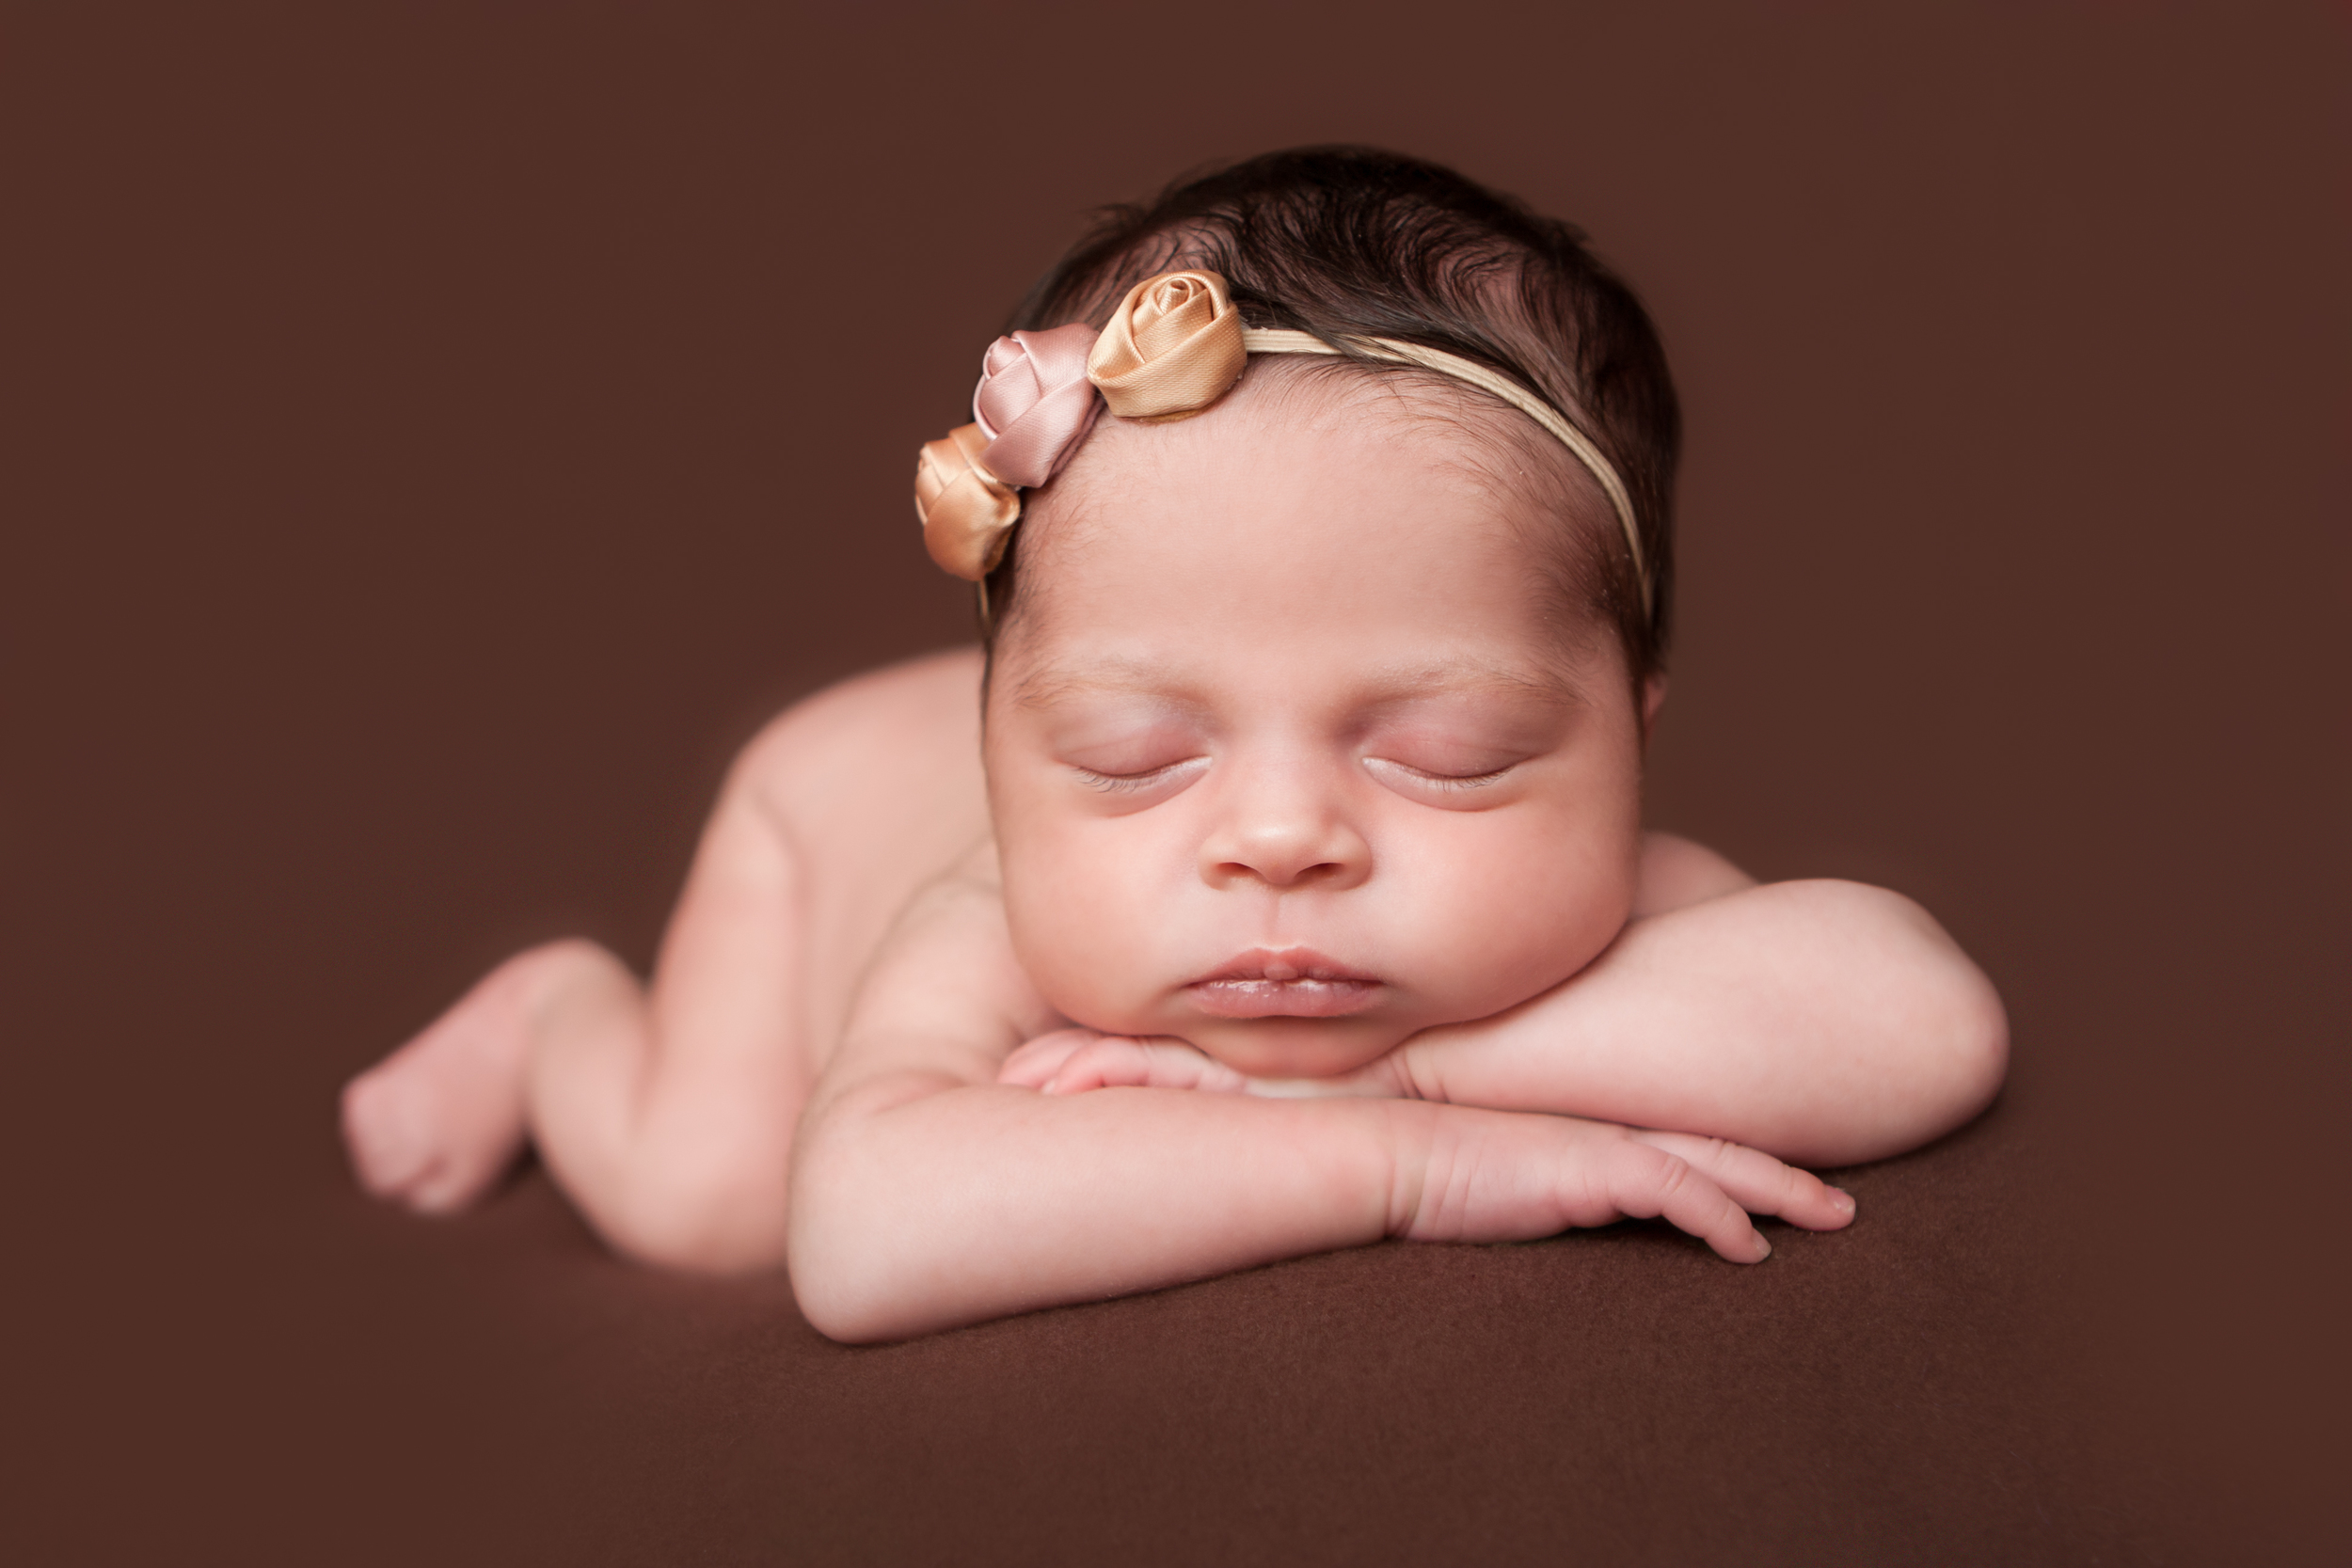 Newborn baby girl, shabby rosebud flower headband orange pink nude, brown backdrop fabric blanket, head chin on hands pose, sleeping baby pose on beanbag, Westchester County, New Rochelle, White Plains, Pelham, New York Newborn Photographer, Amanda Noelle Photography